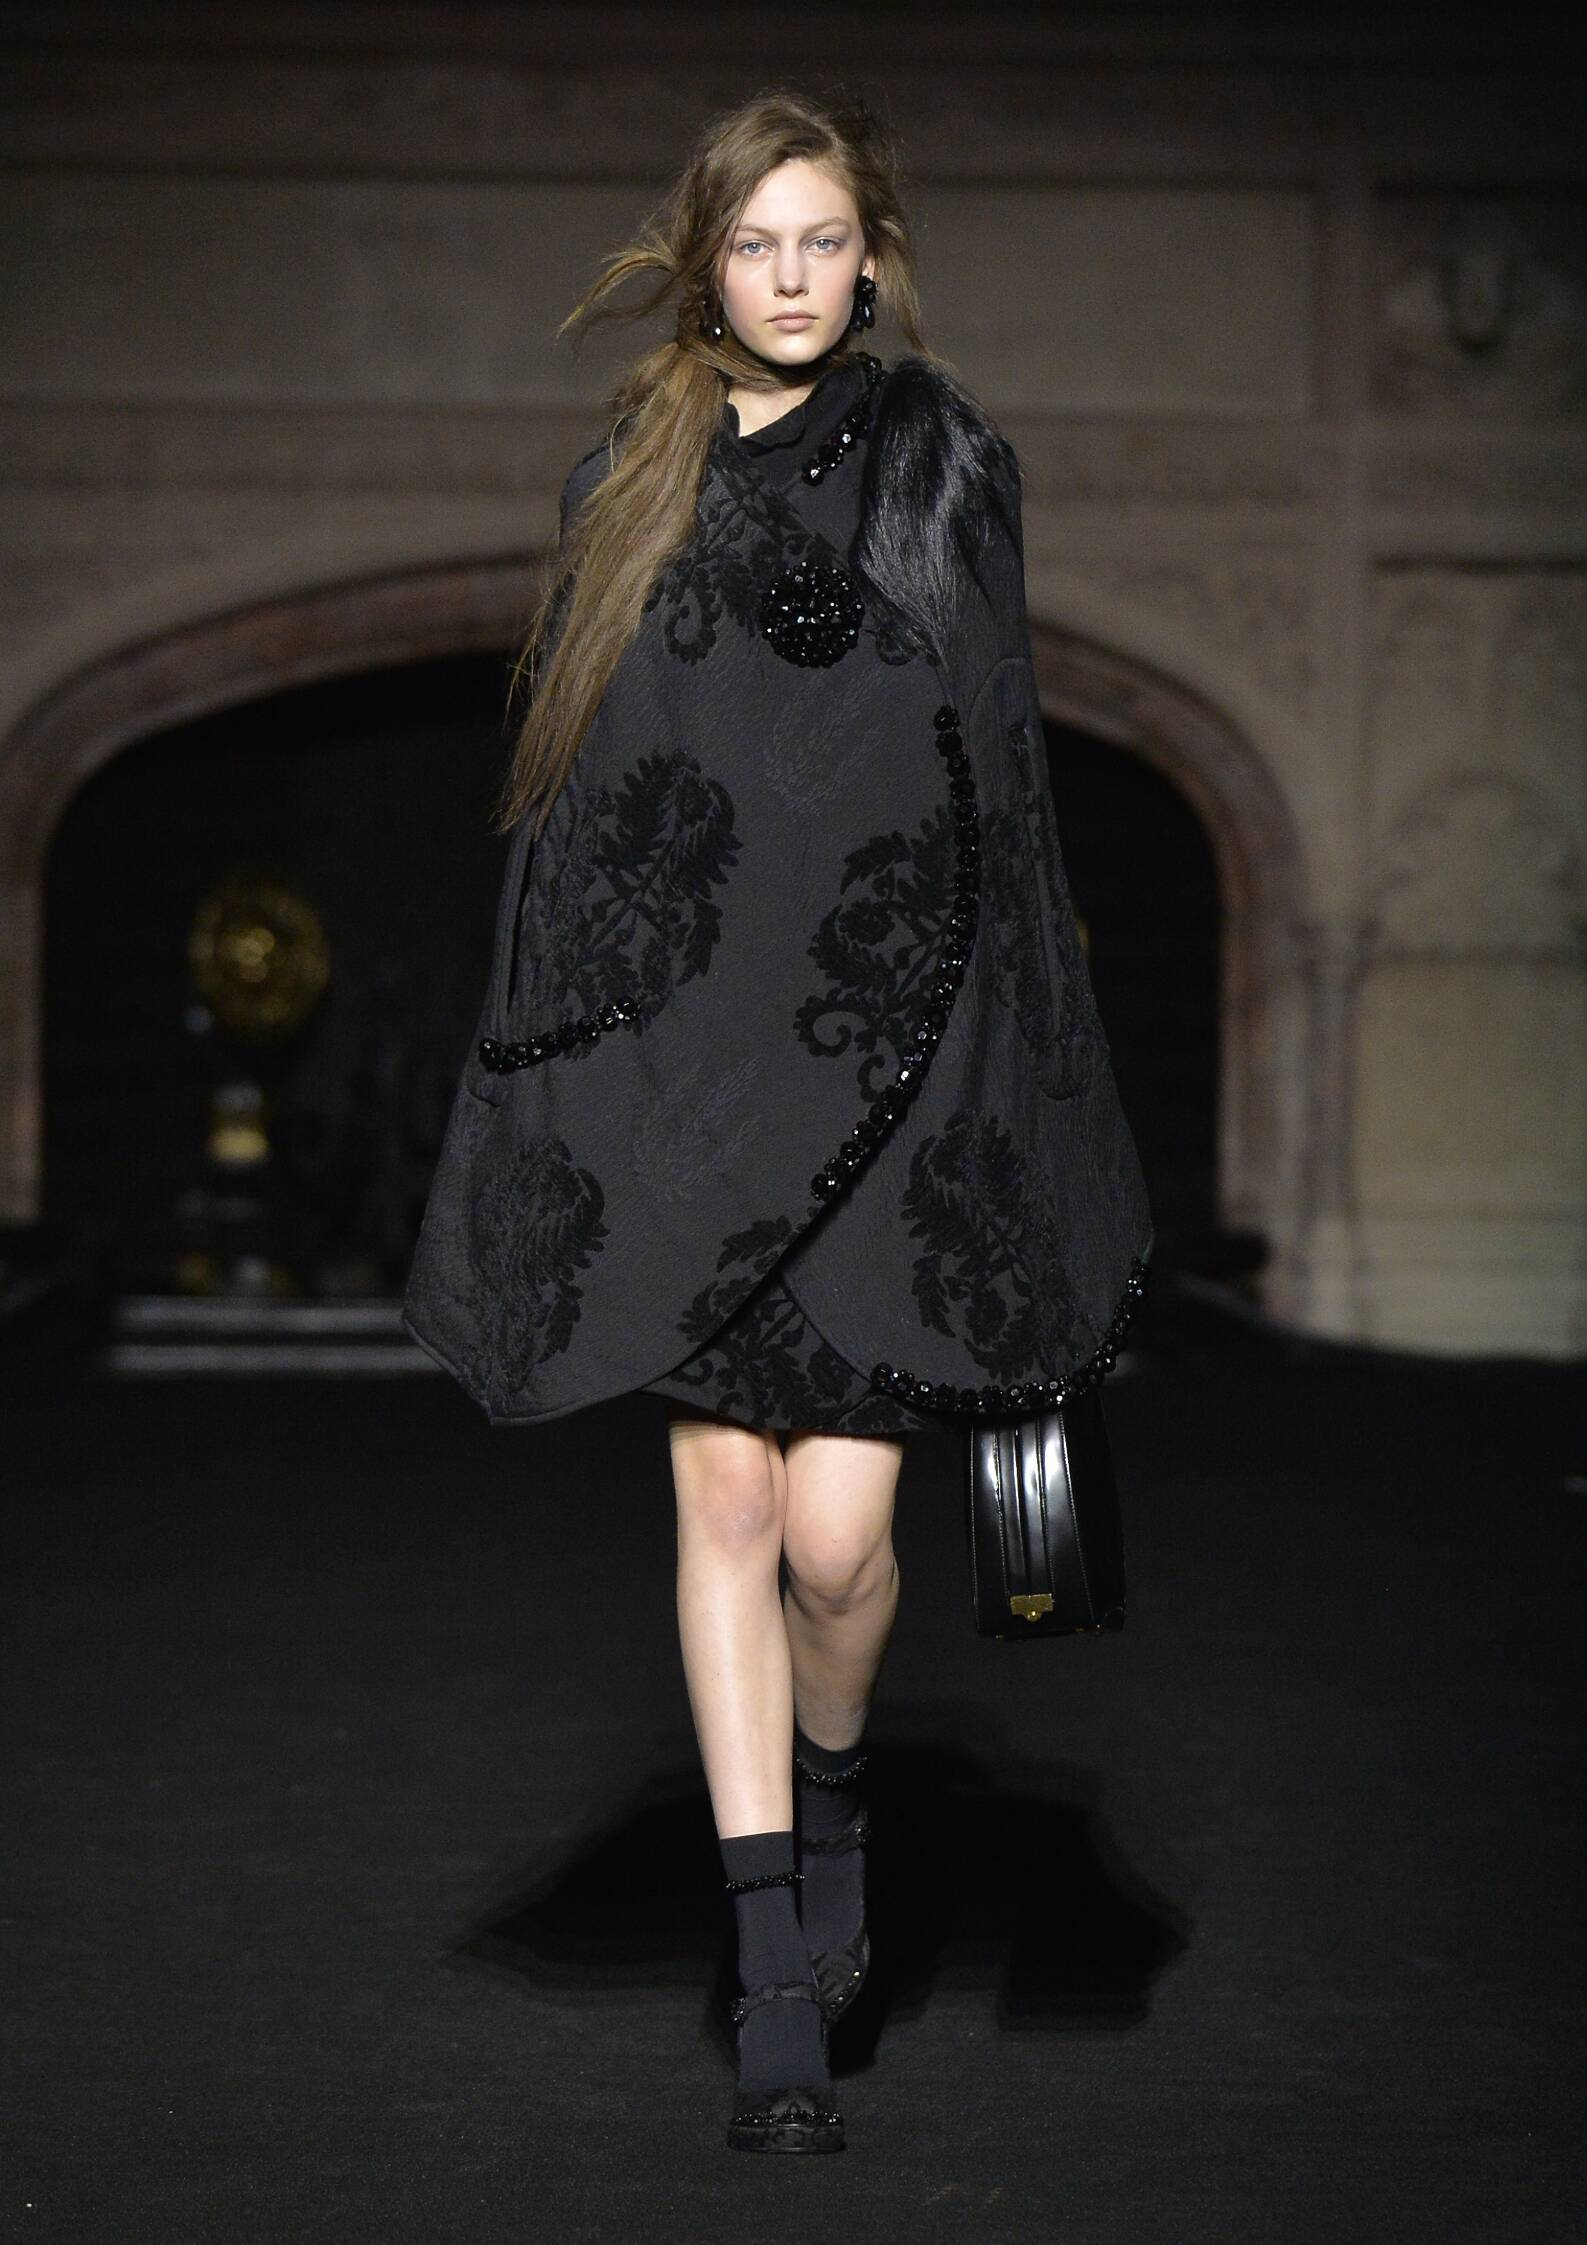 Simone Rocha Fall Winter 2015 16 Women's Collection London Fashion Week Fashion Show